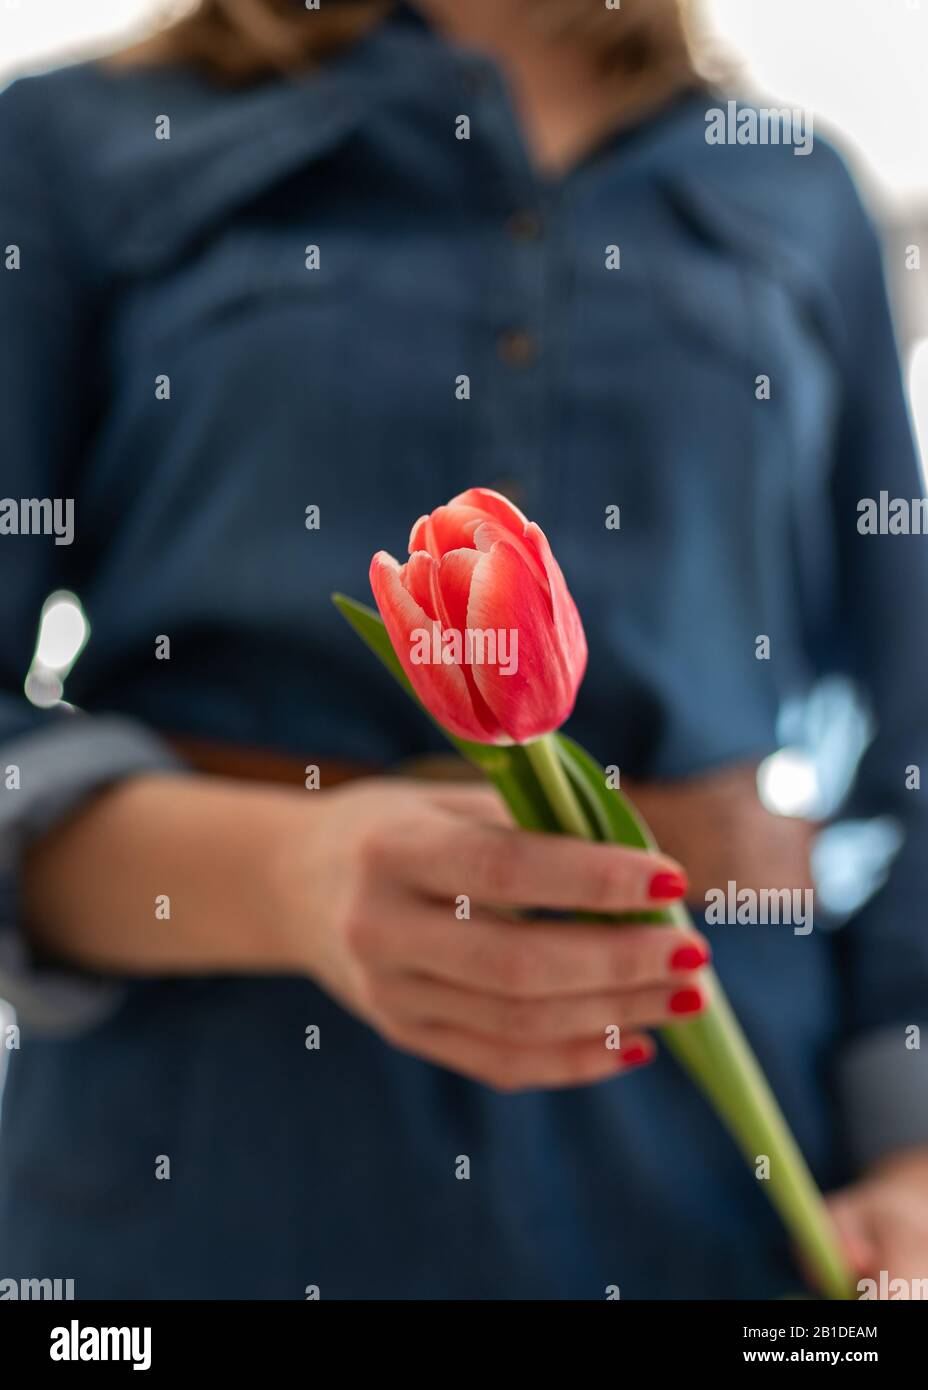 Closeup view of a red vertical tulip hold by a woman painted fingernails hand wearing a denim dress. Stock Photo